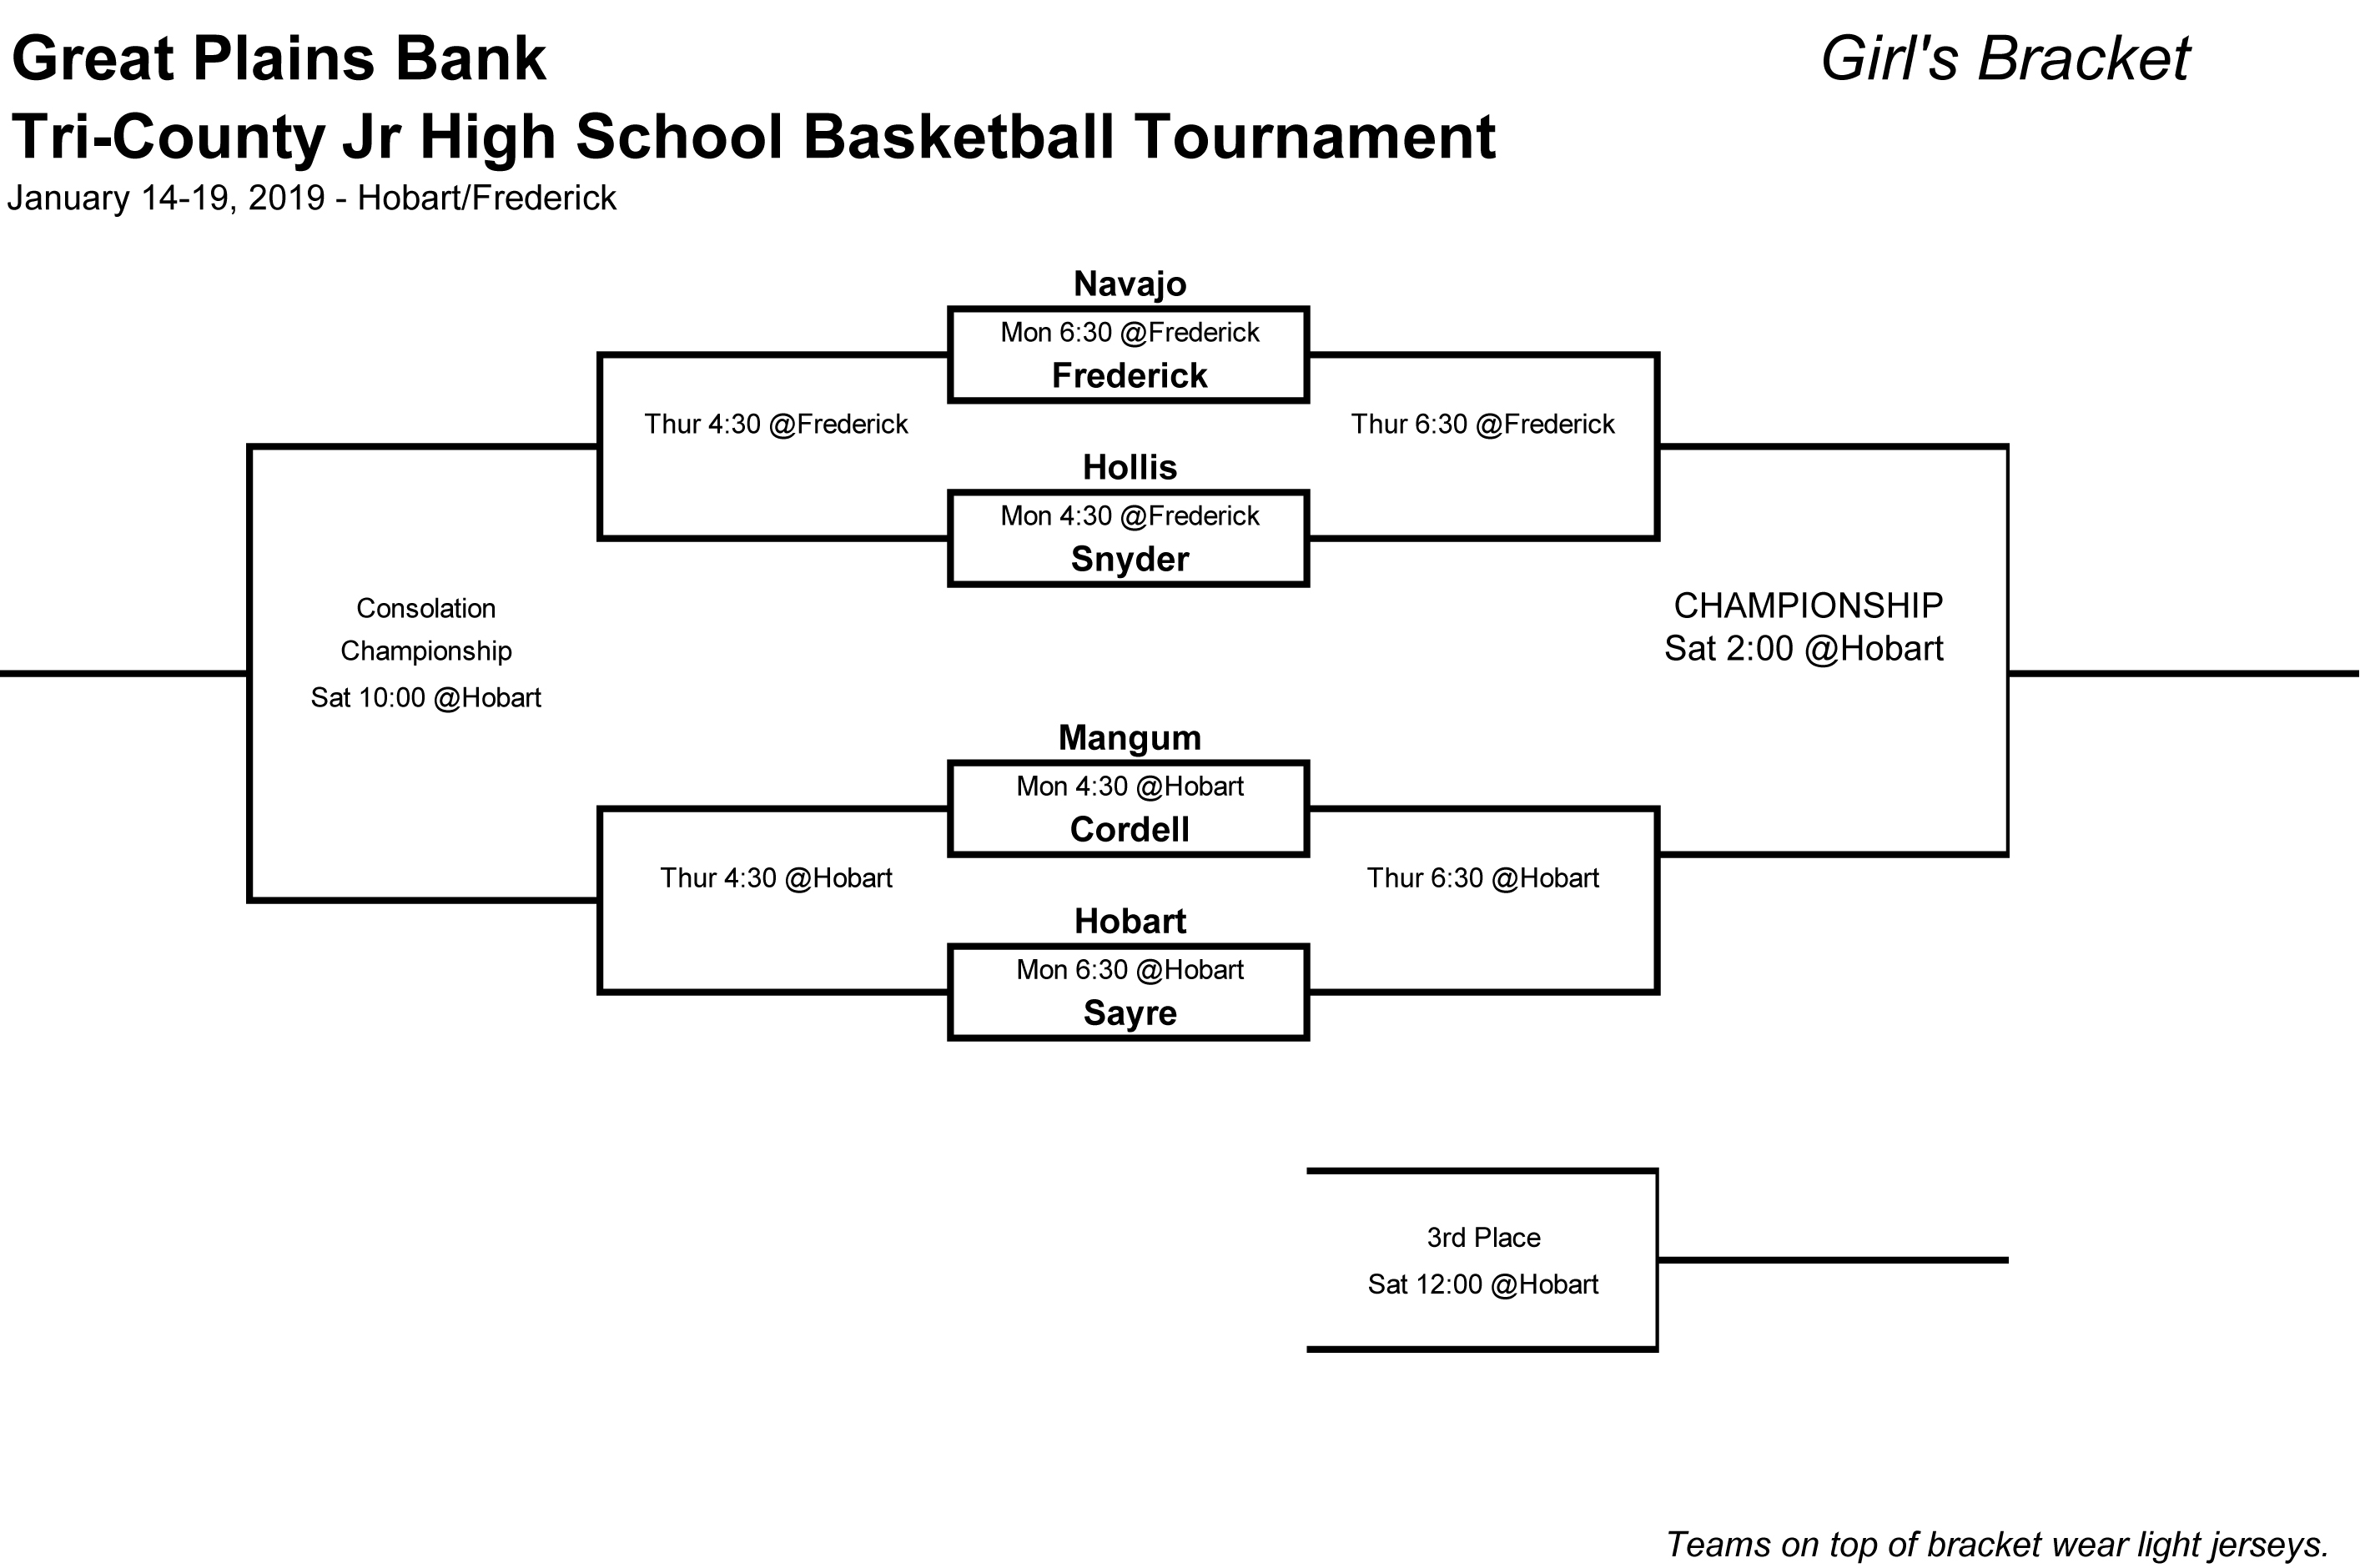 1545165771-2019_tri_county_jh_tournament_girls_bracket_blank__1_